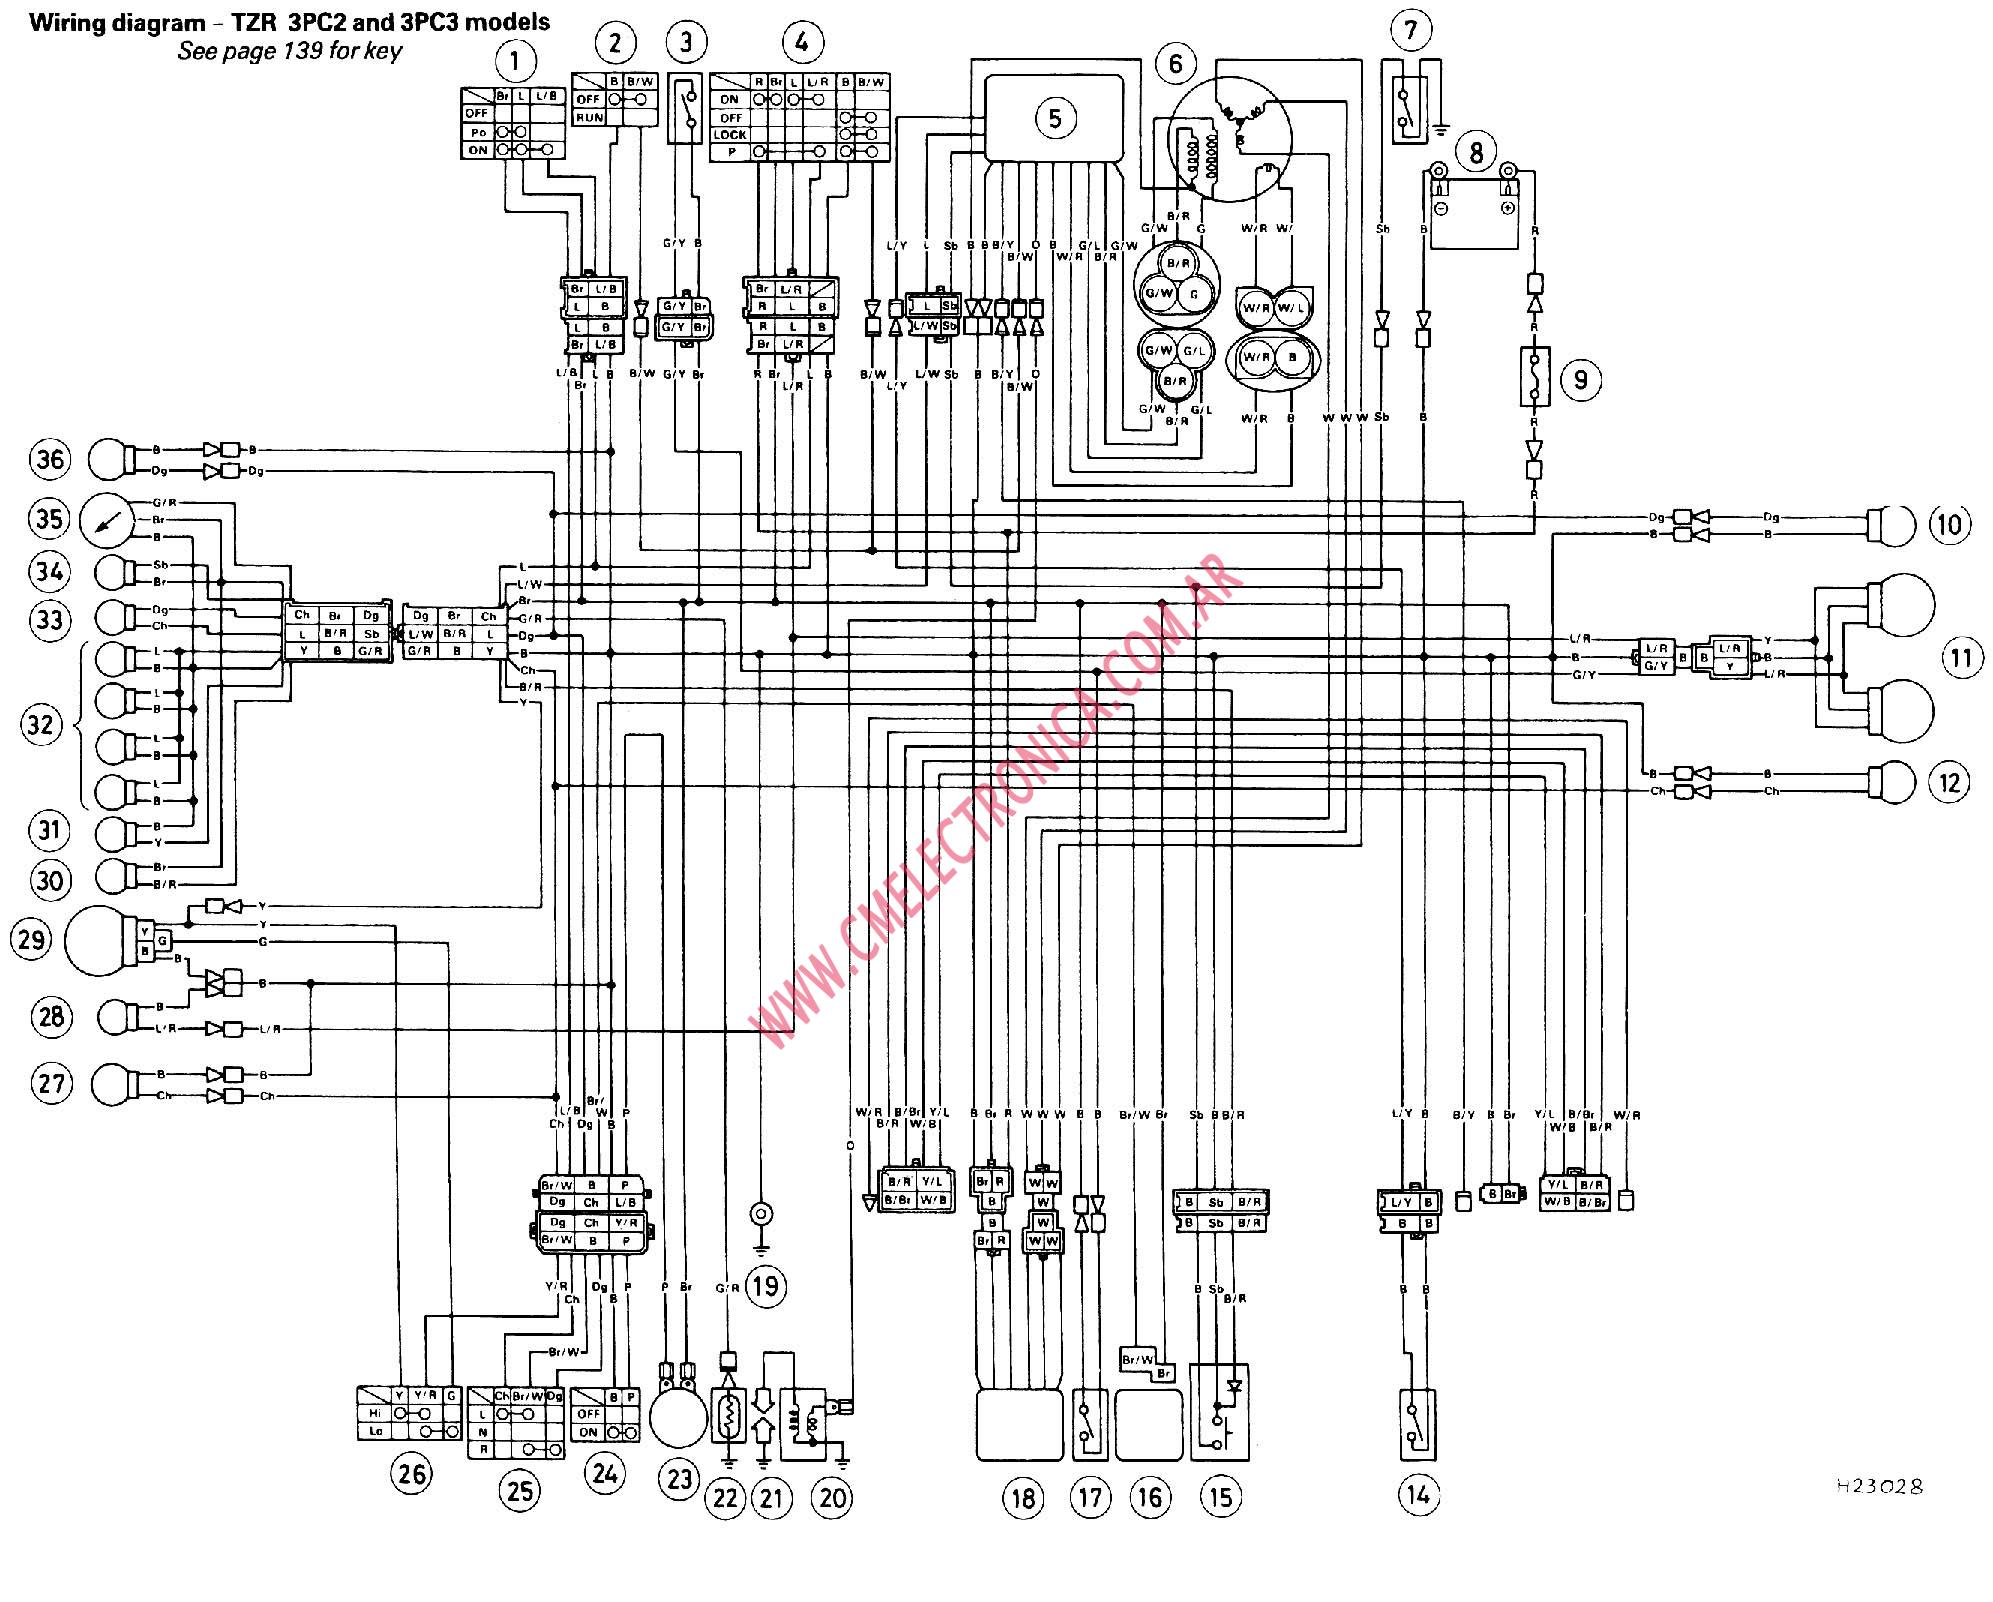 Wiring Diagram Yamaha Tzr 50 | Wiring Diagram Centre on yamaha xs650 wiring-diagram, honda xr250 wiring diagram, triumph bonneville wiring diagram, honda goldwing wiring diagram, xs650 chopper wiring diagram, triumph tr6 wiring diagram, honda cb750 wiring diagram, honda mr50 wiring diagram, honda cb350 wiring diagram, honda cx500 wiring diagram, yamaha golf cart parts diagram, honda cm400a wiring diagram, suzuki gt750 wiring diagram, harness diagram, suzuki gt250 wiring diagram, yamaha golf cart carburetor diagram, harley davidson wiring diagram, suzuki gs400 wiring diagram, kawasaki wiring diagram, suzuki gt550 wiring diagram,